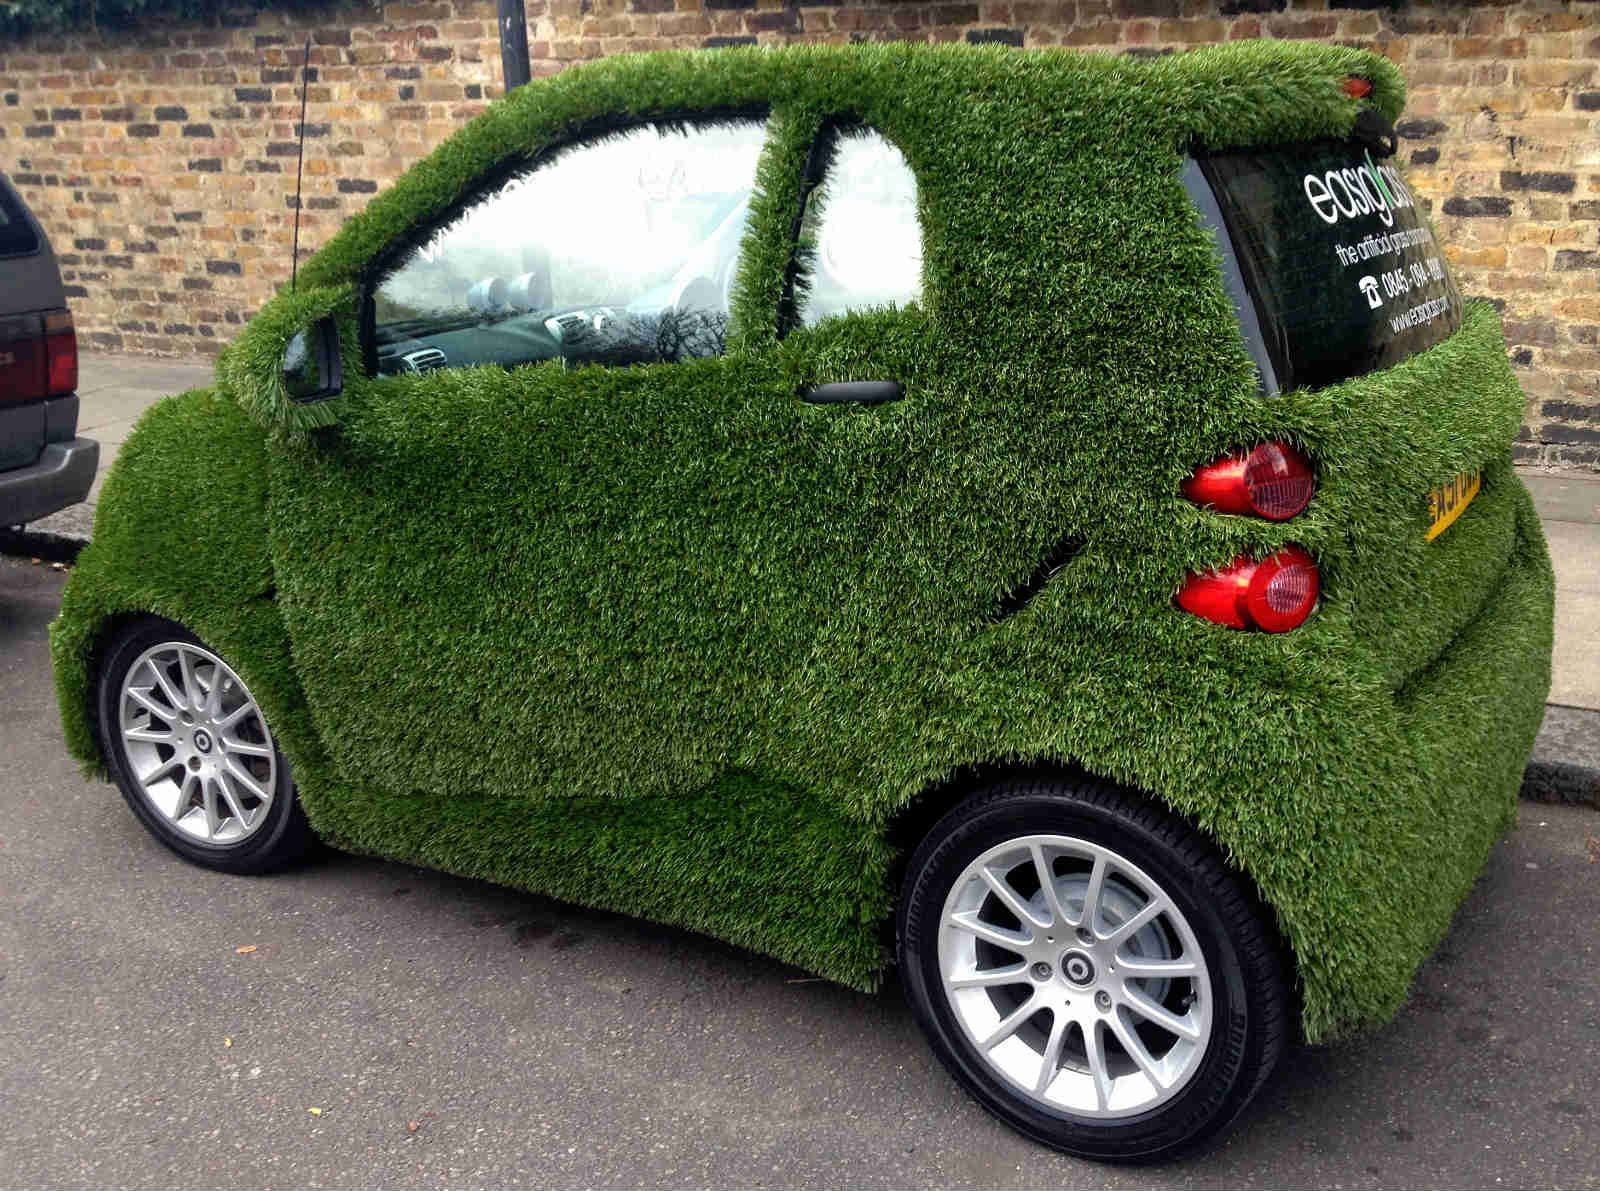 Green Grass Car No Car No Fun Muscle Cars And Power Cars